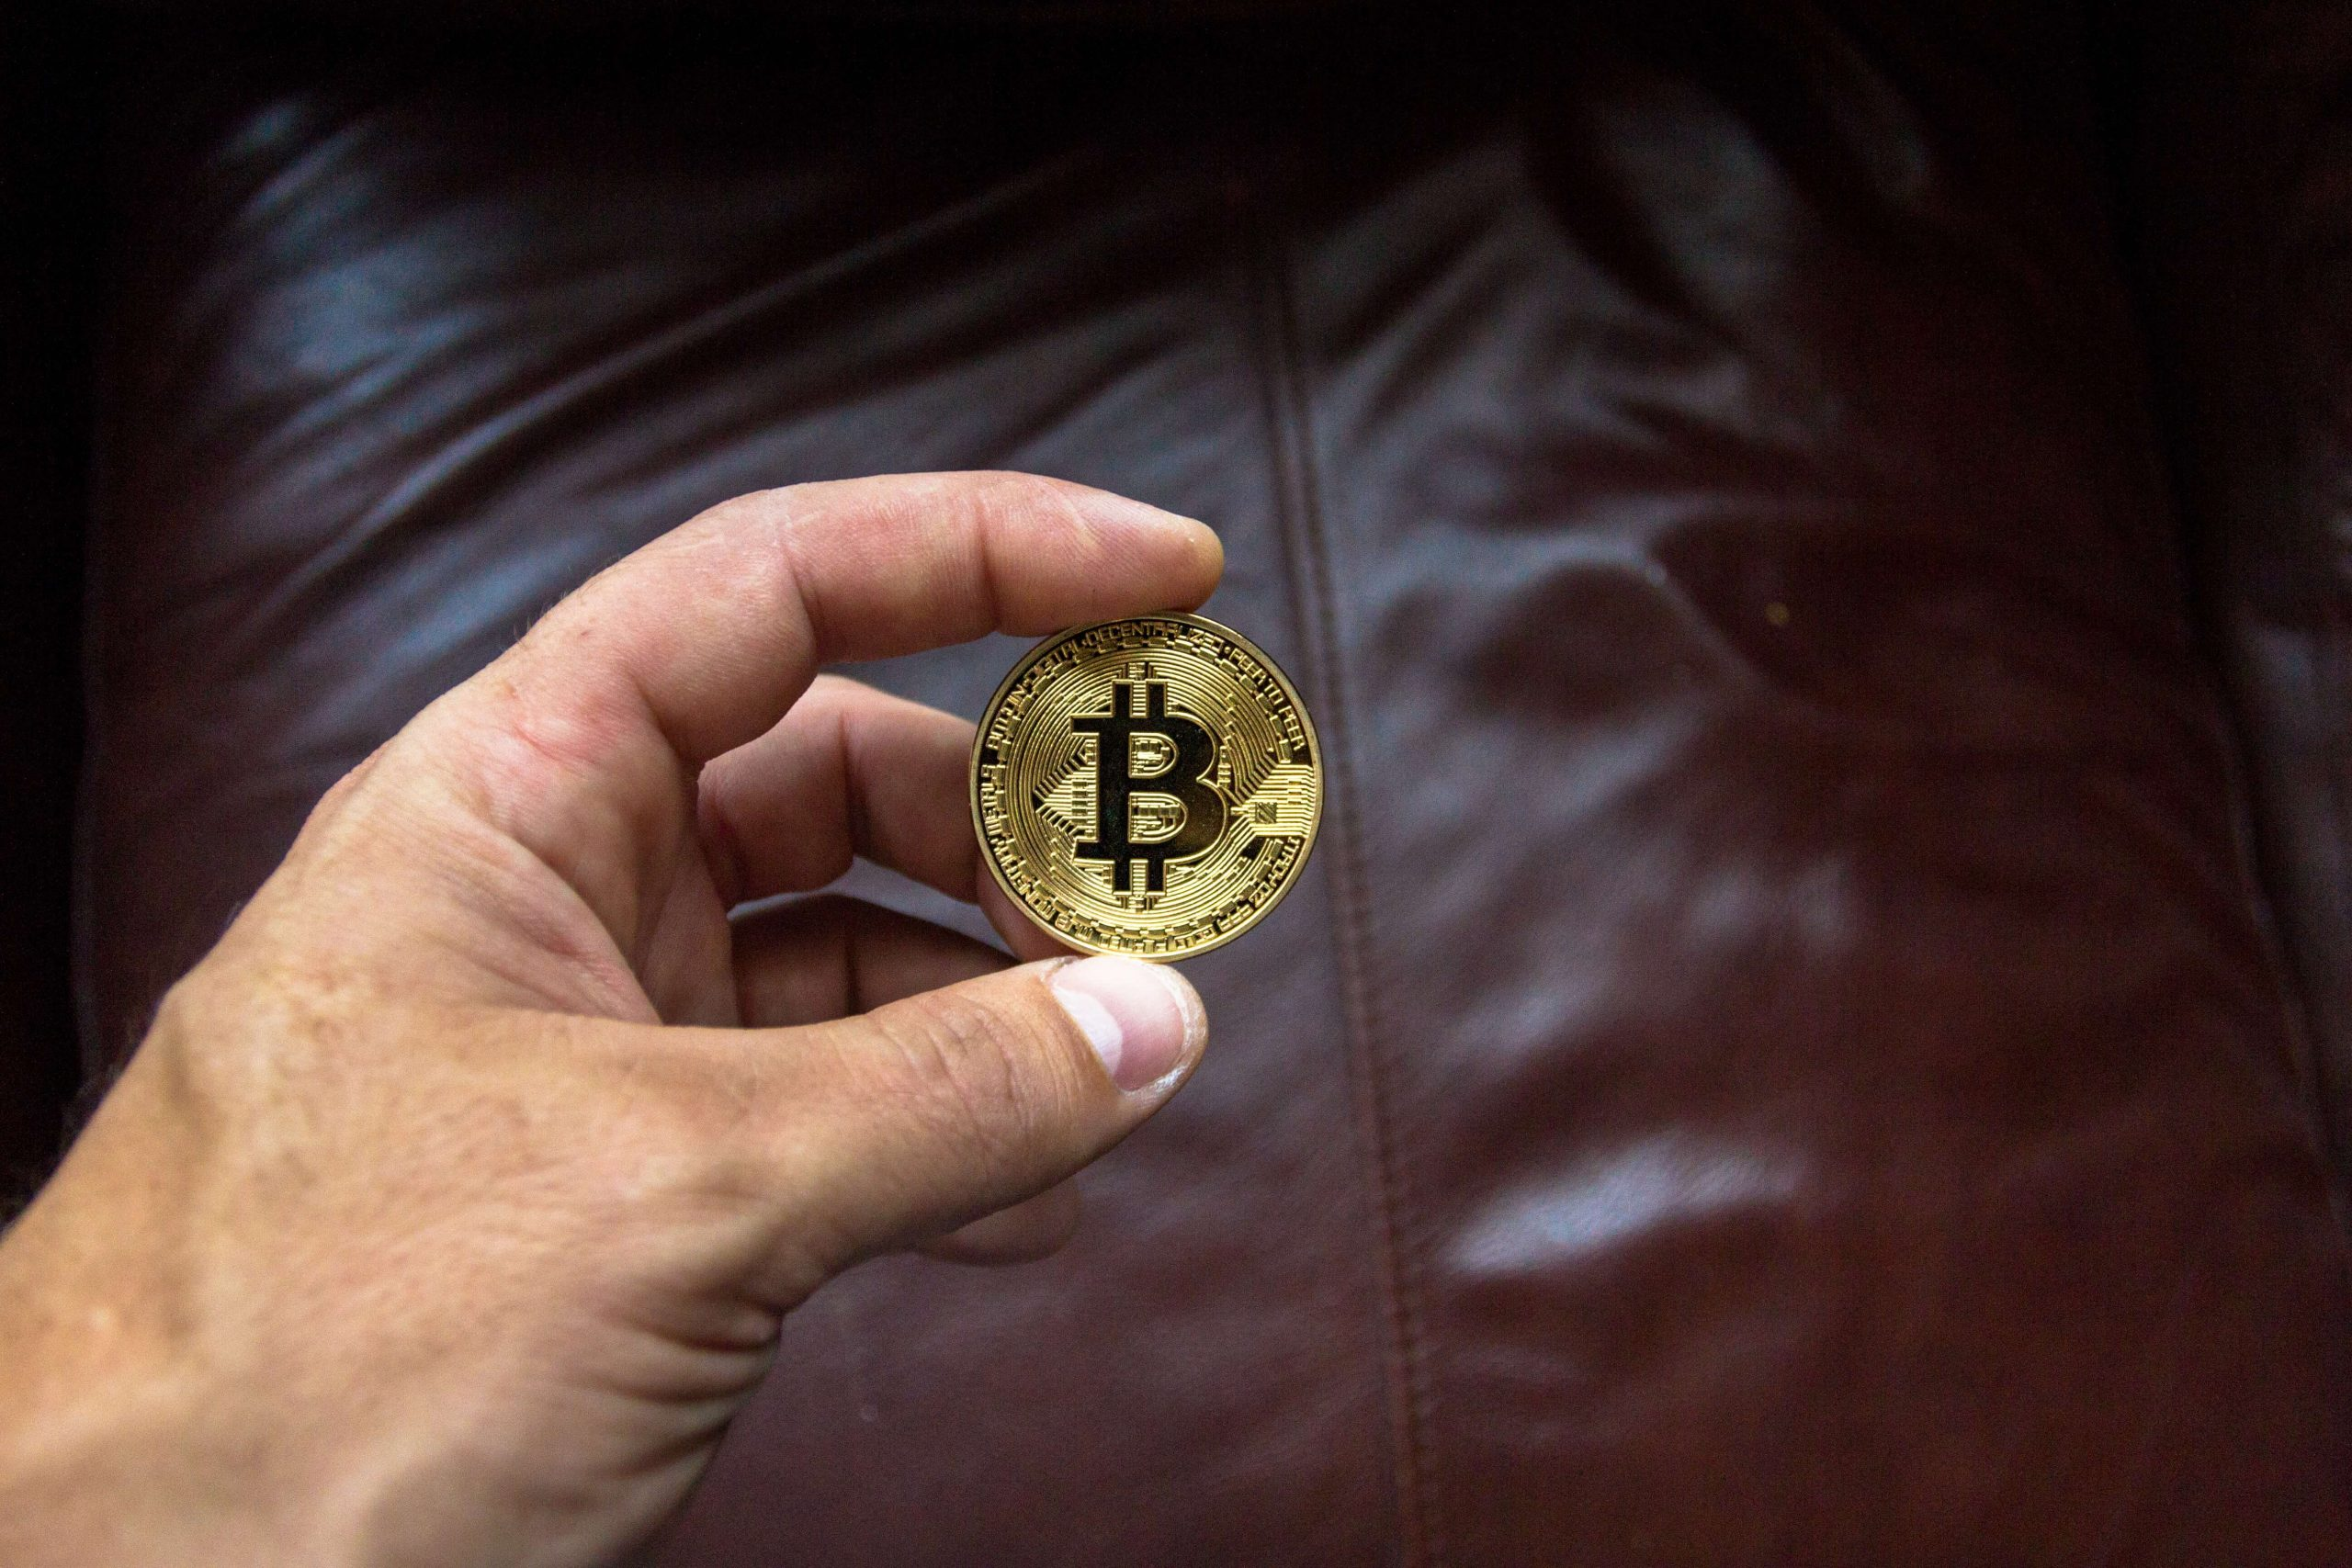 round-gold-colored-and-black-coin-on-person-s-hand-bitcoin_formula-post